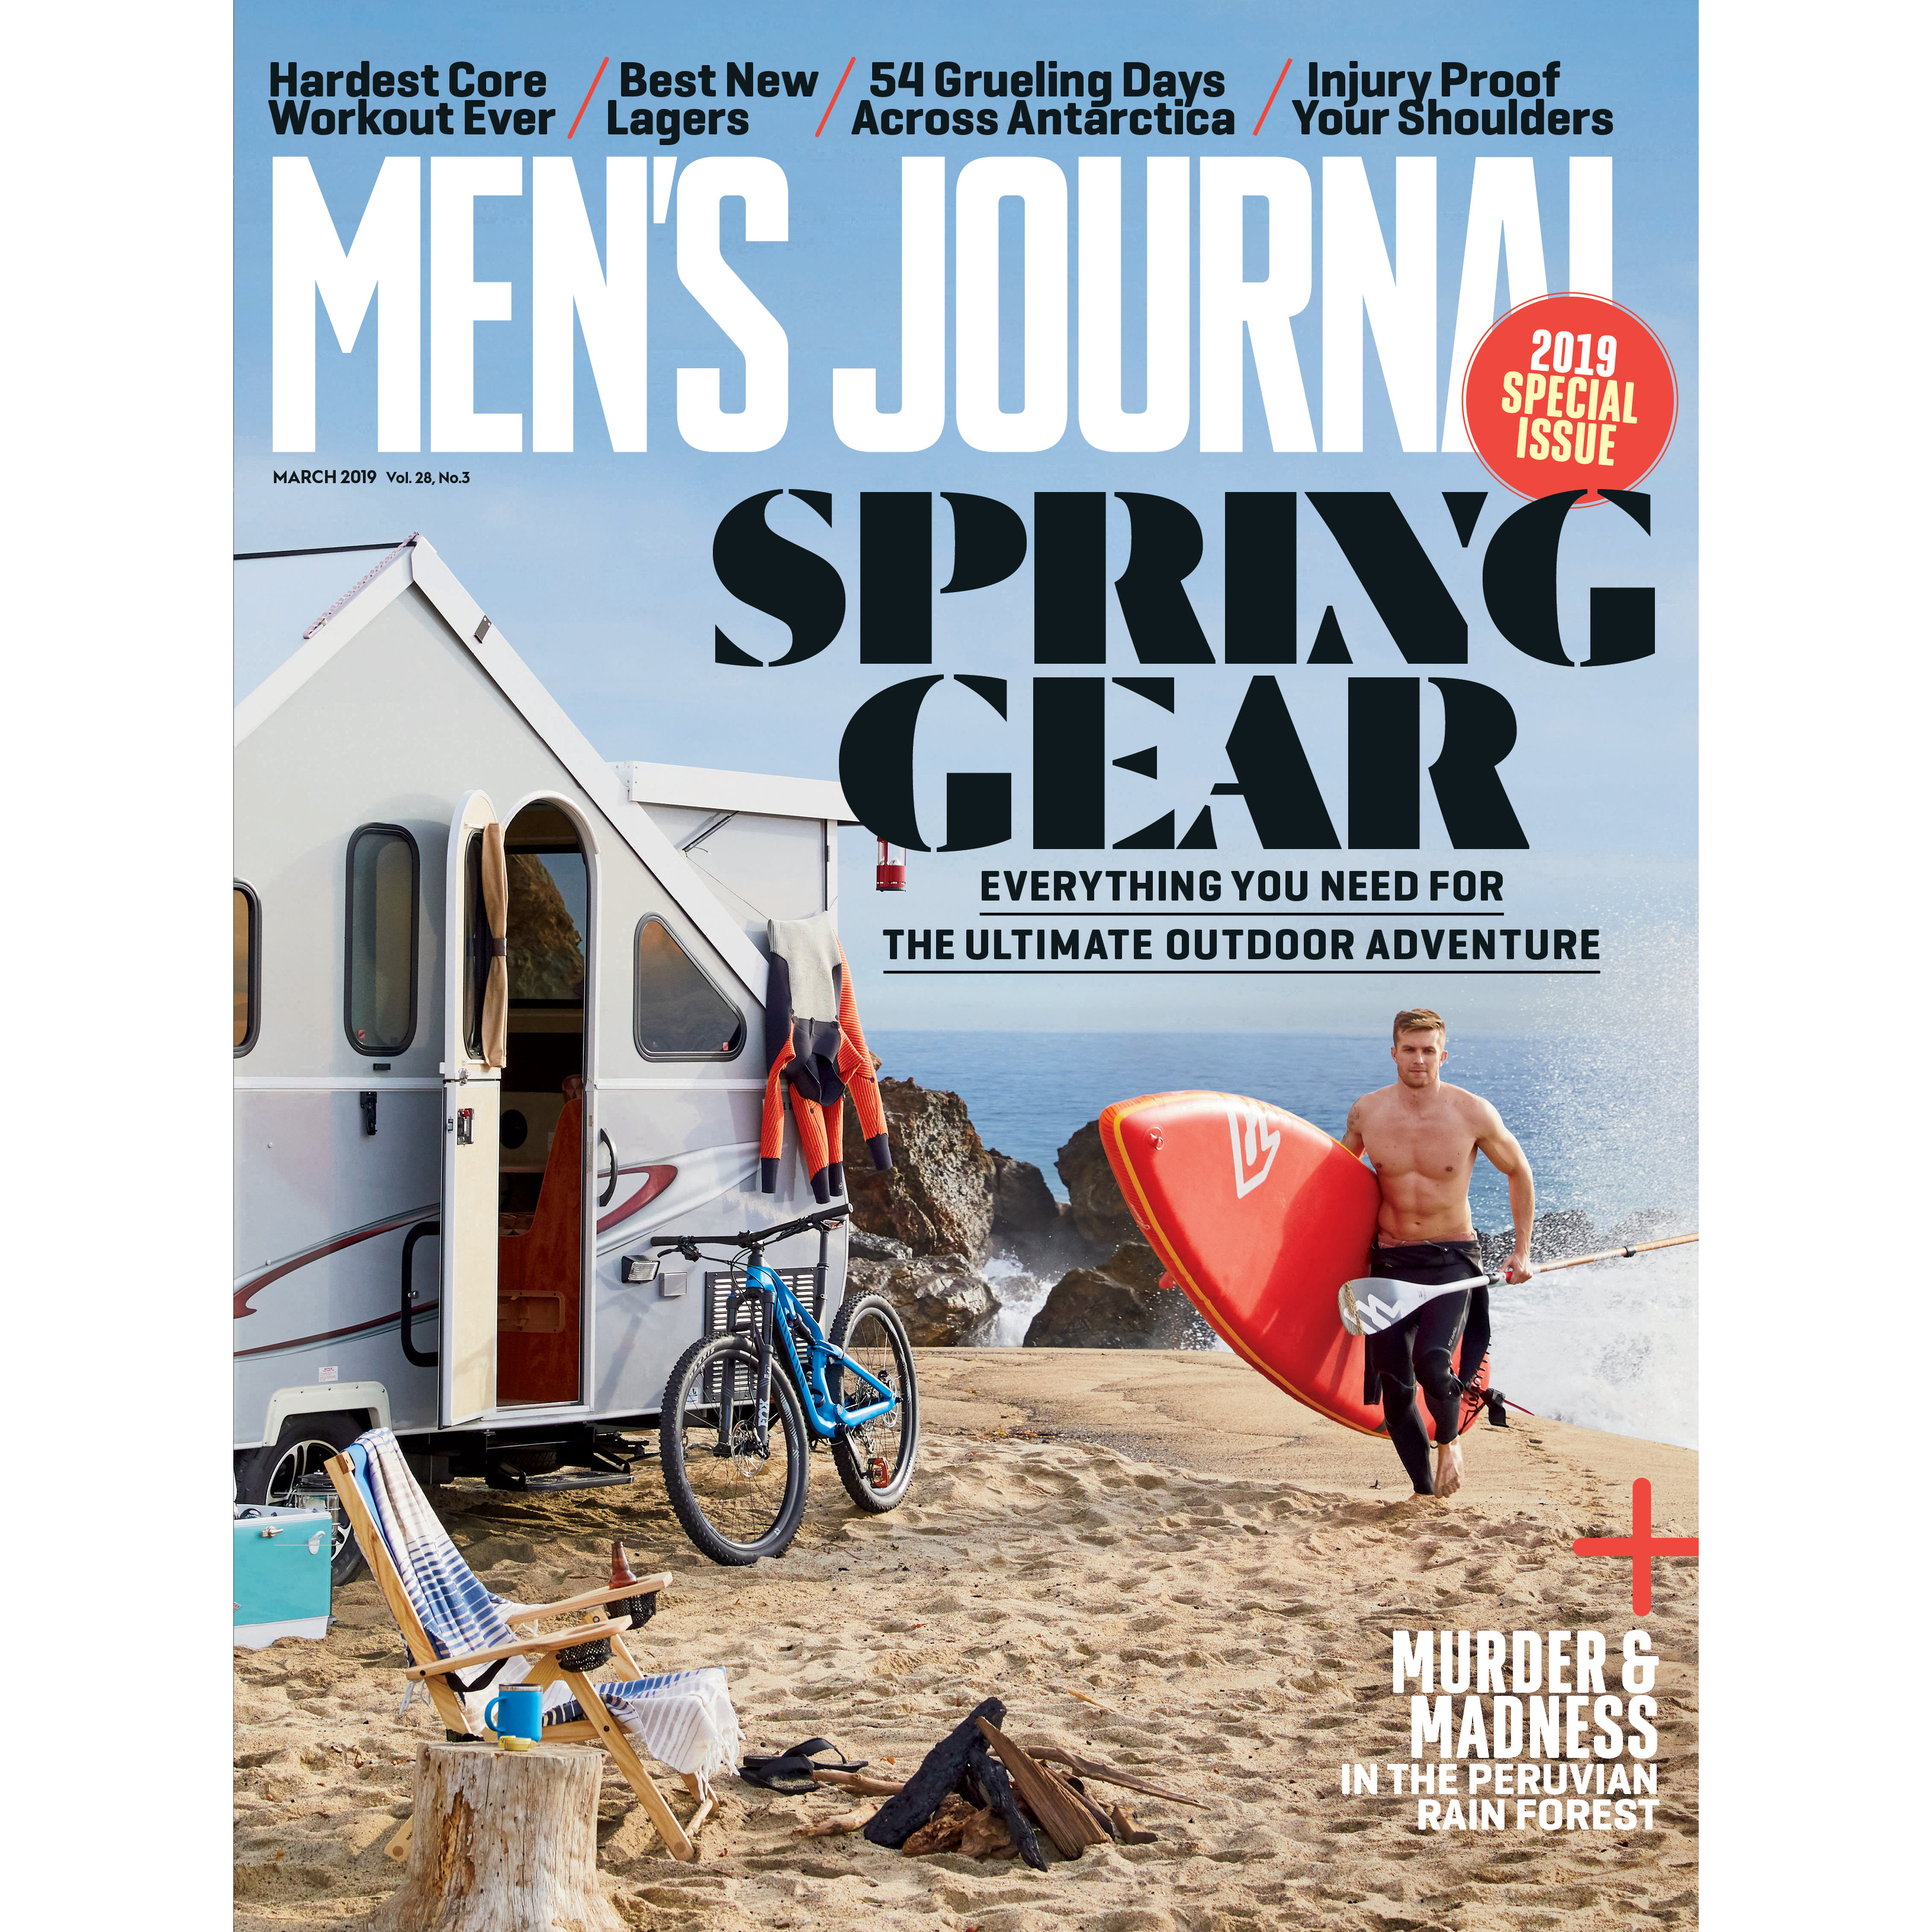 2019 Spring Gear Issue Cover, Photograph by Jessica Sample